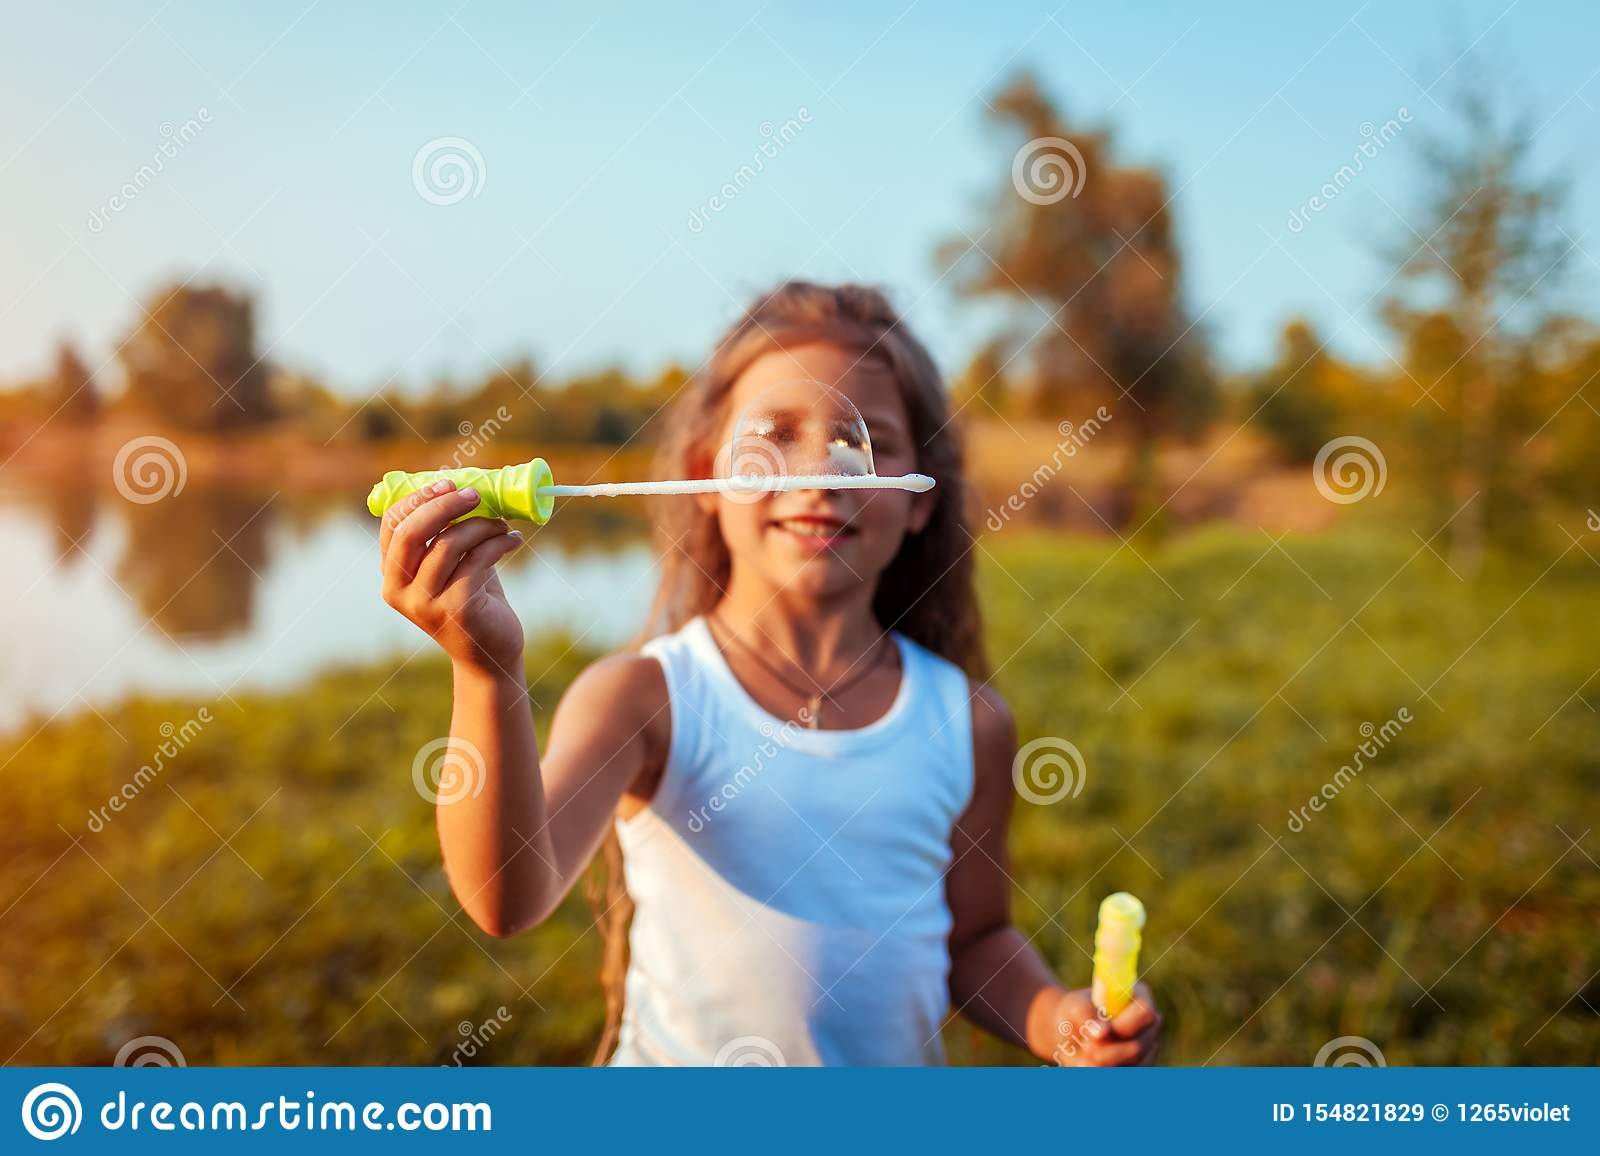 Little Cute Girl Blowing Bubbles In Summer Park By River